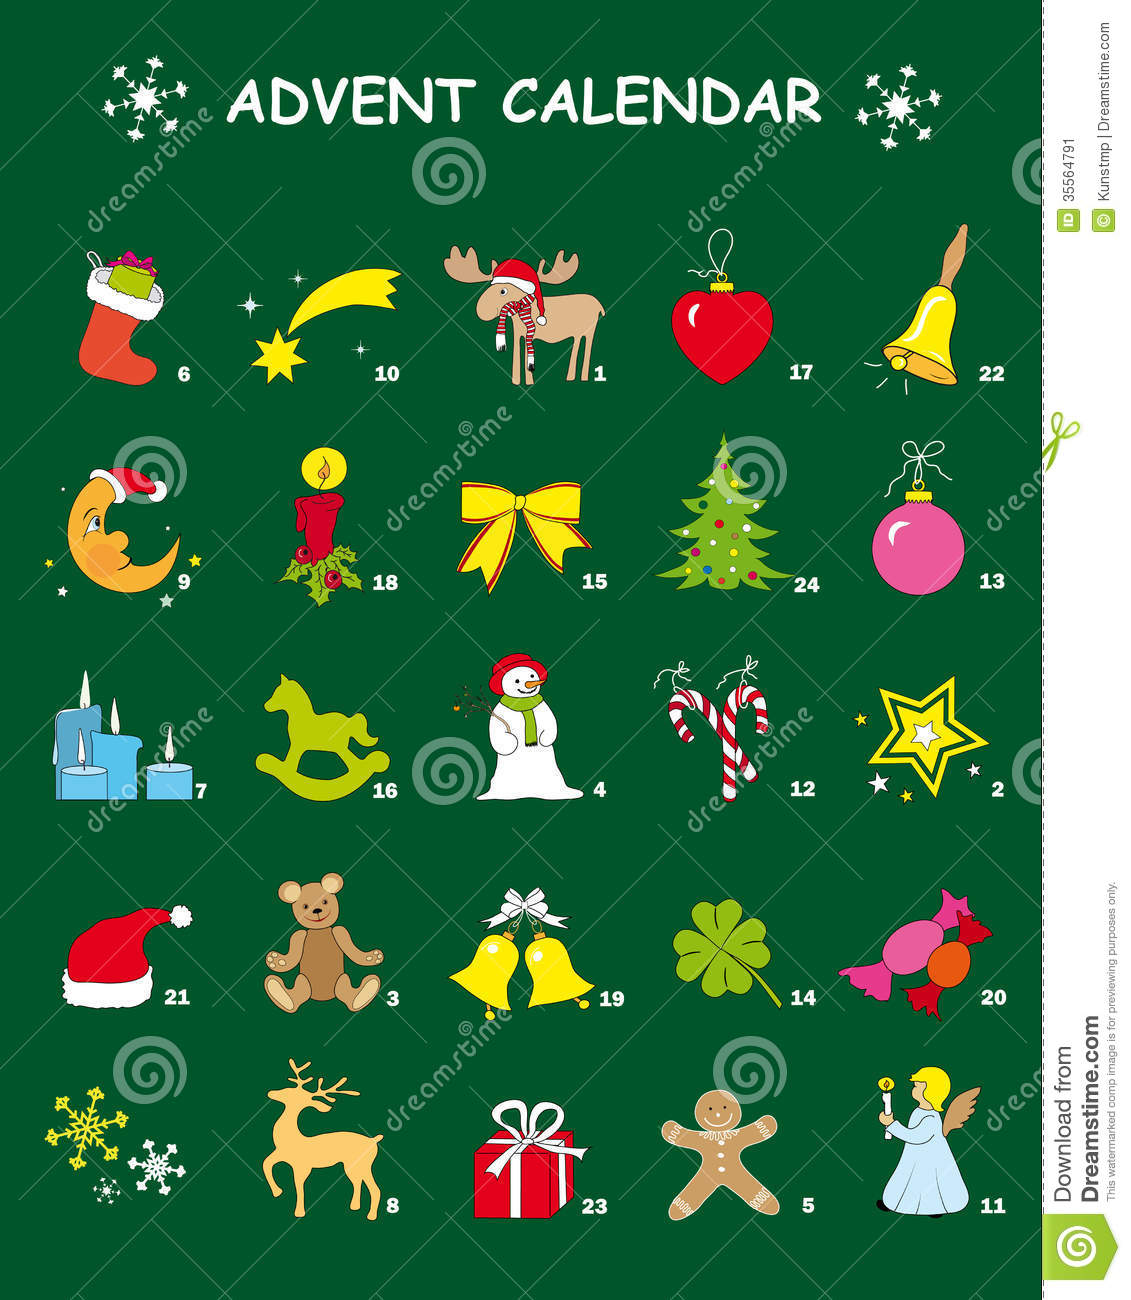 Advent Calendar In Green With 24 Christmas Designs Stock Image ...